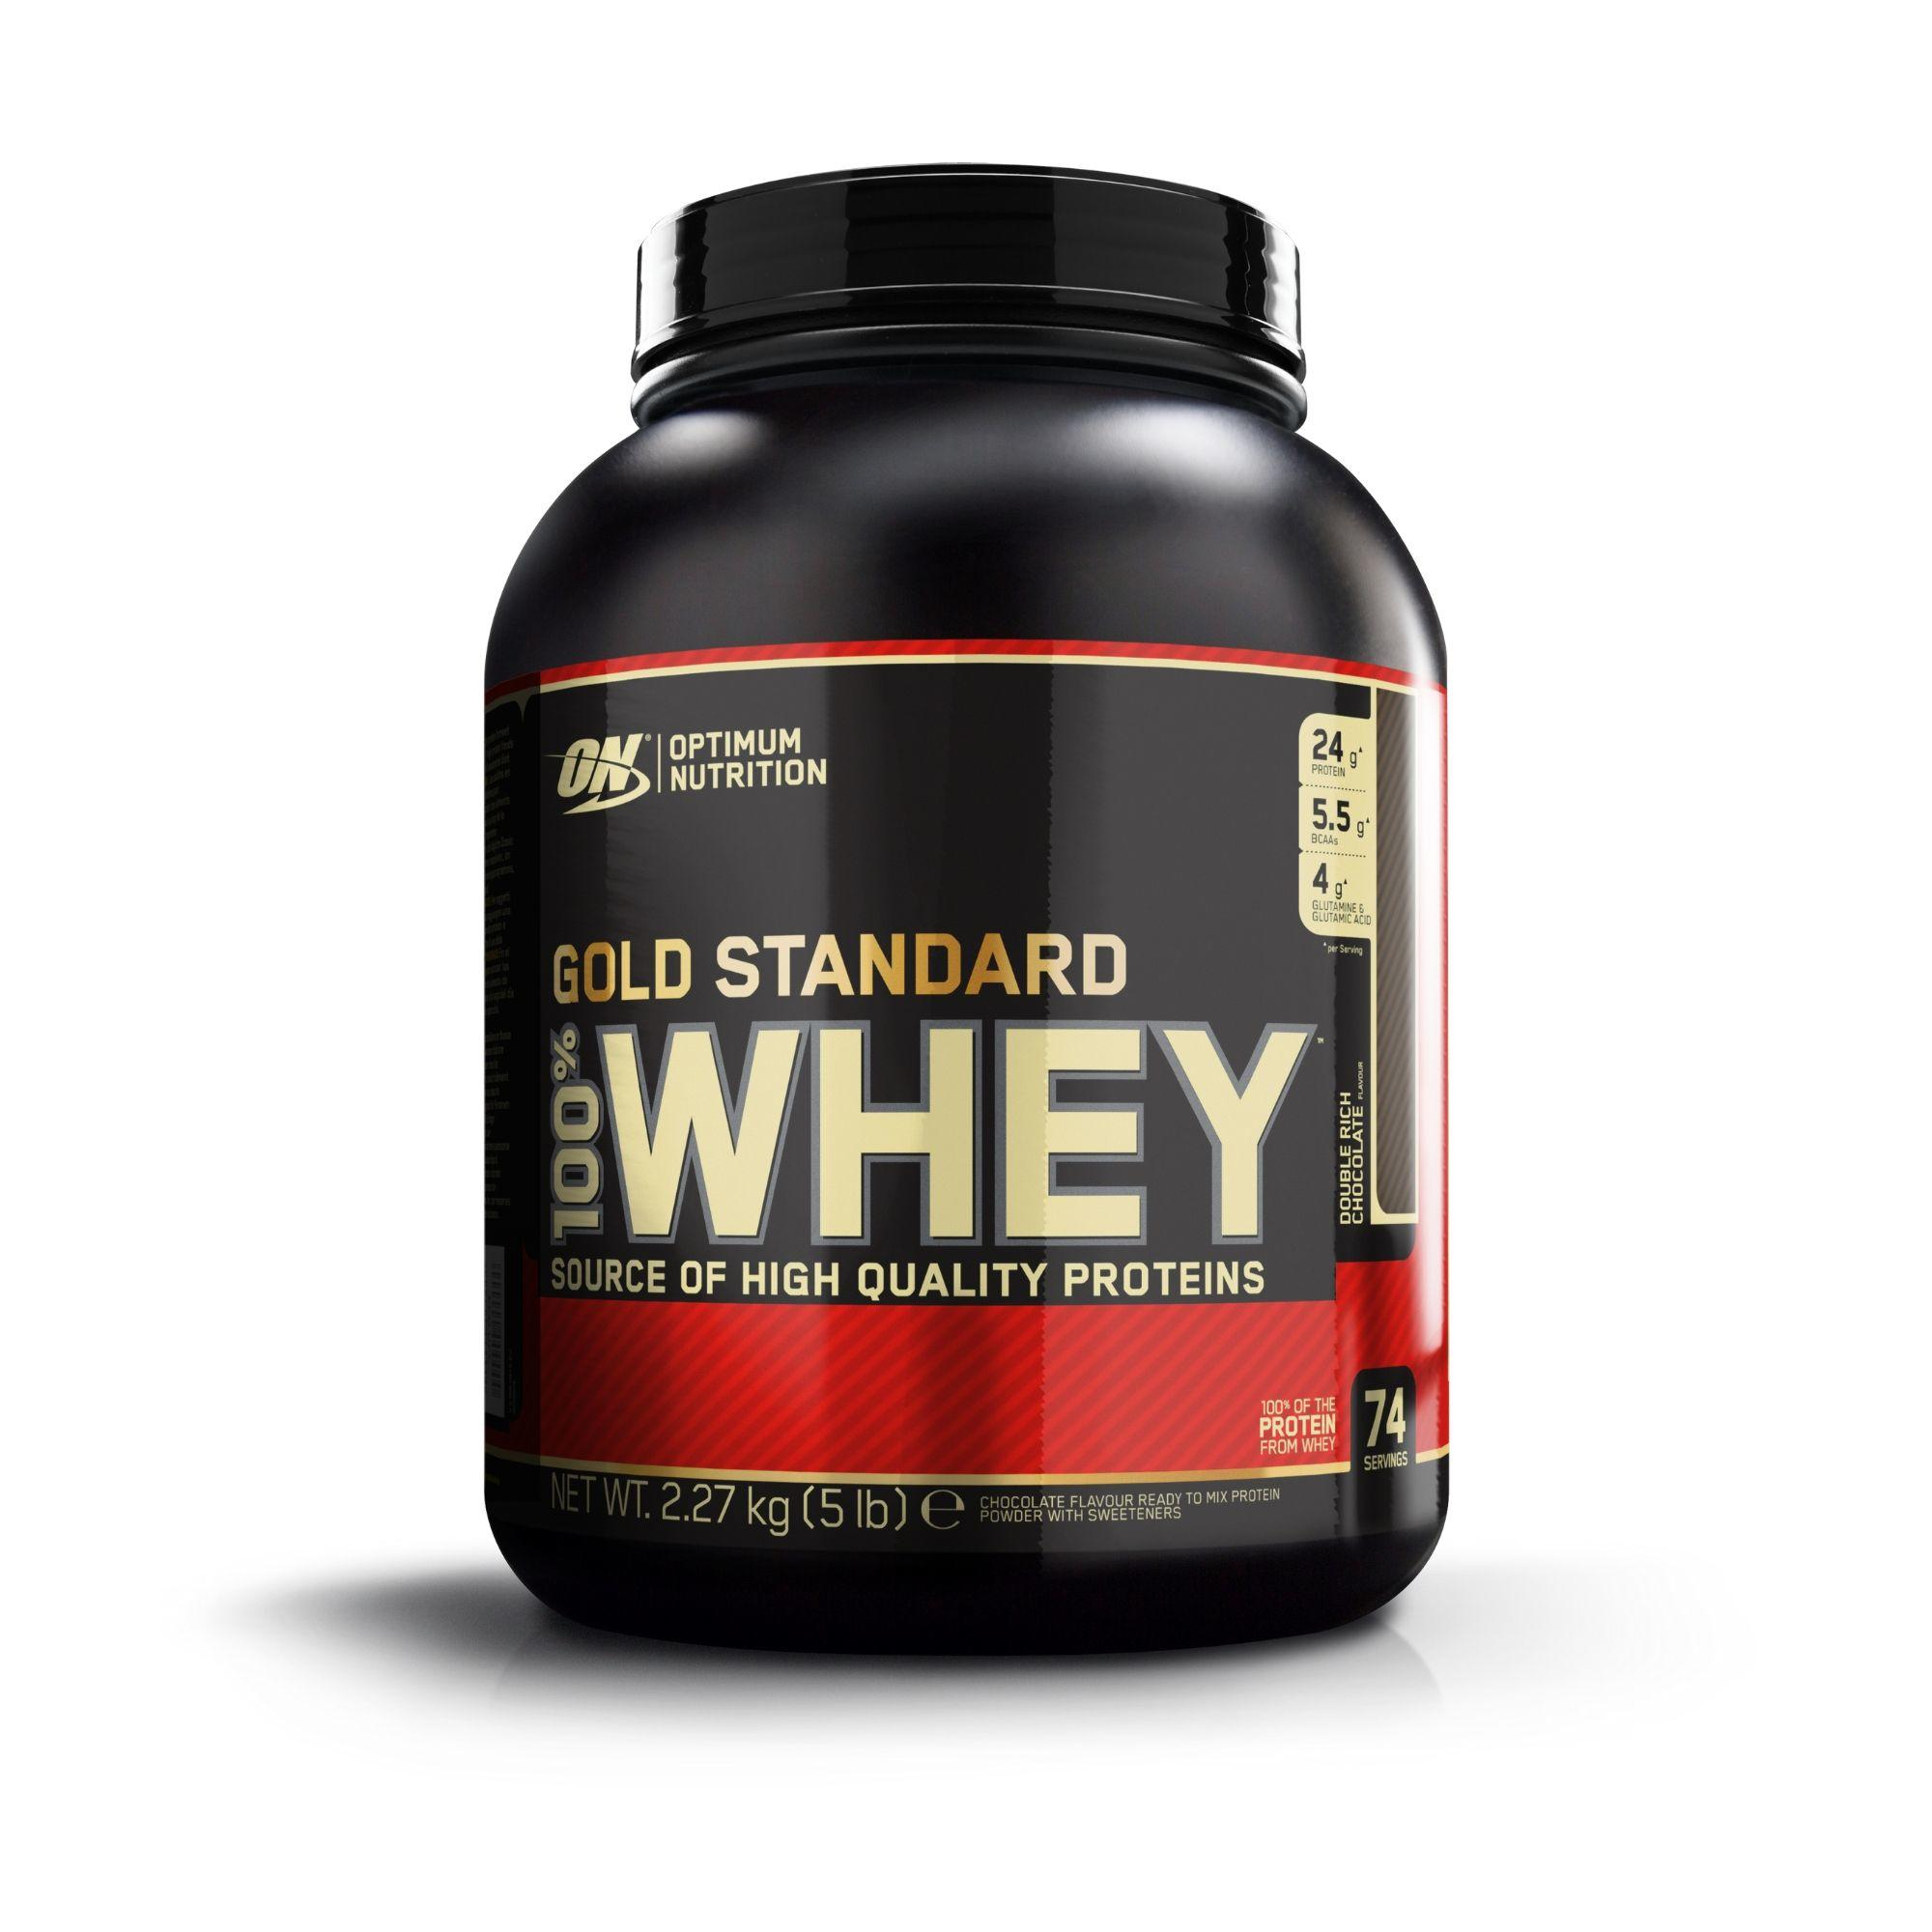 Proteine Whey Gold Standard OPTIMUM NUTRITION EM